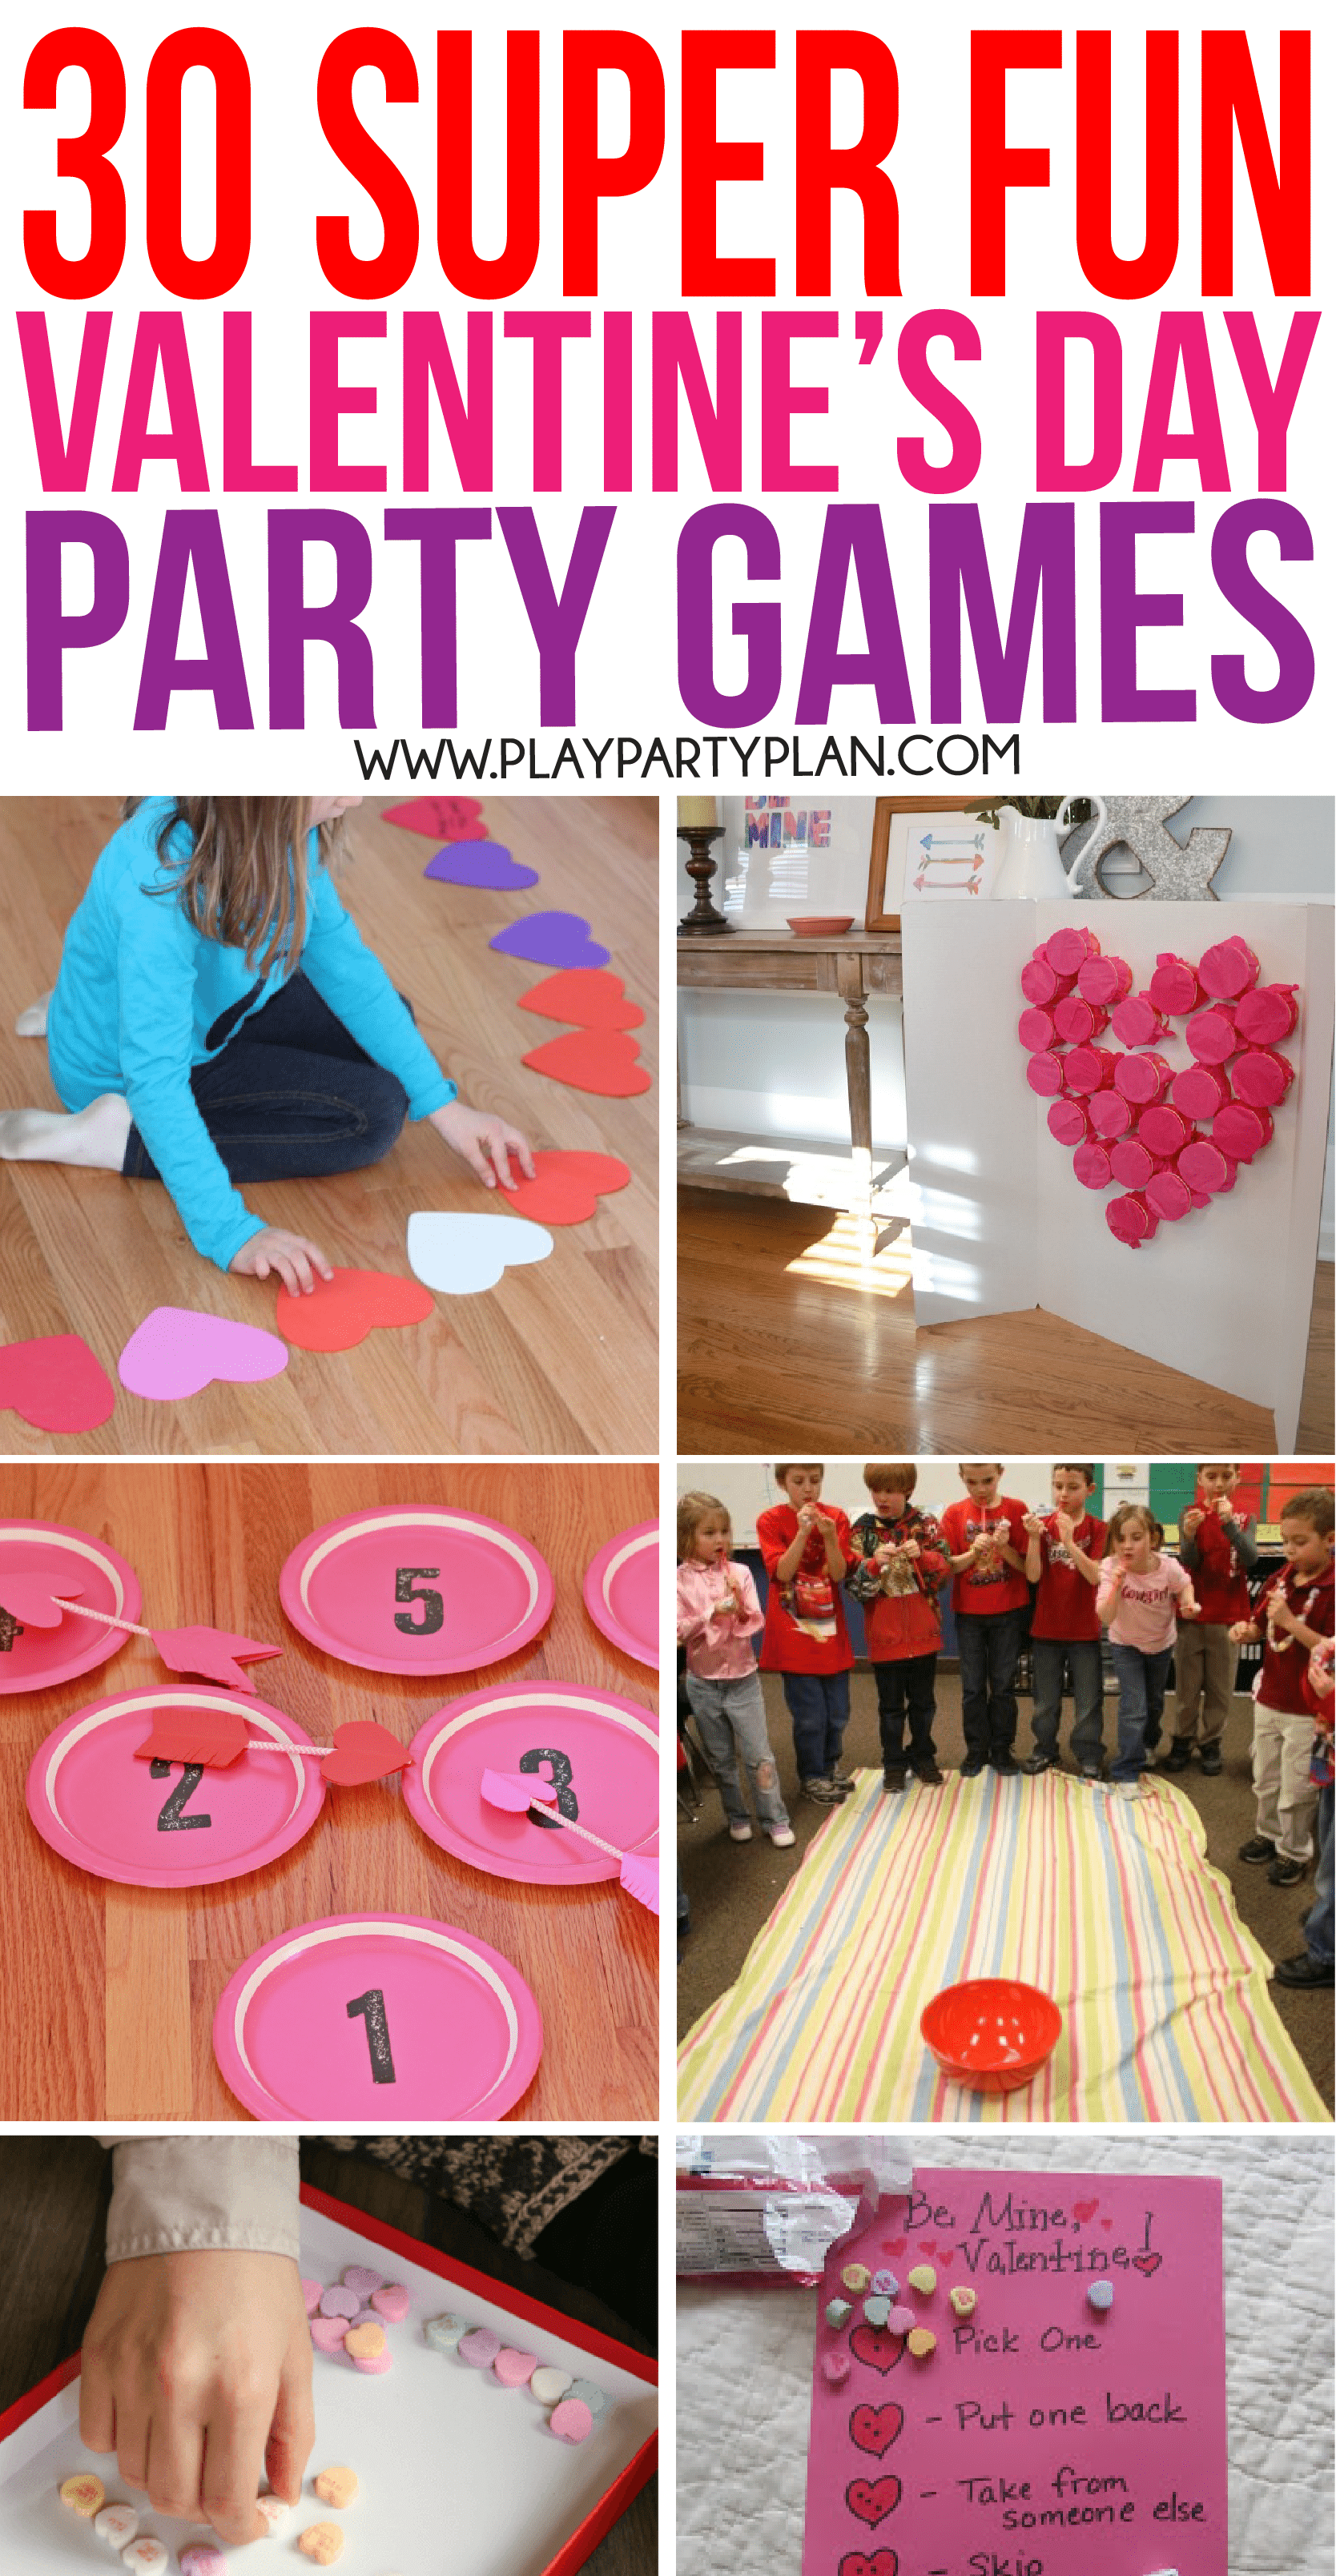 church valentine party games for adults